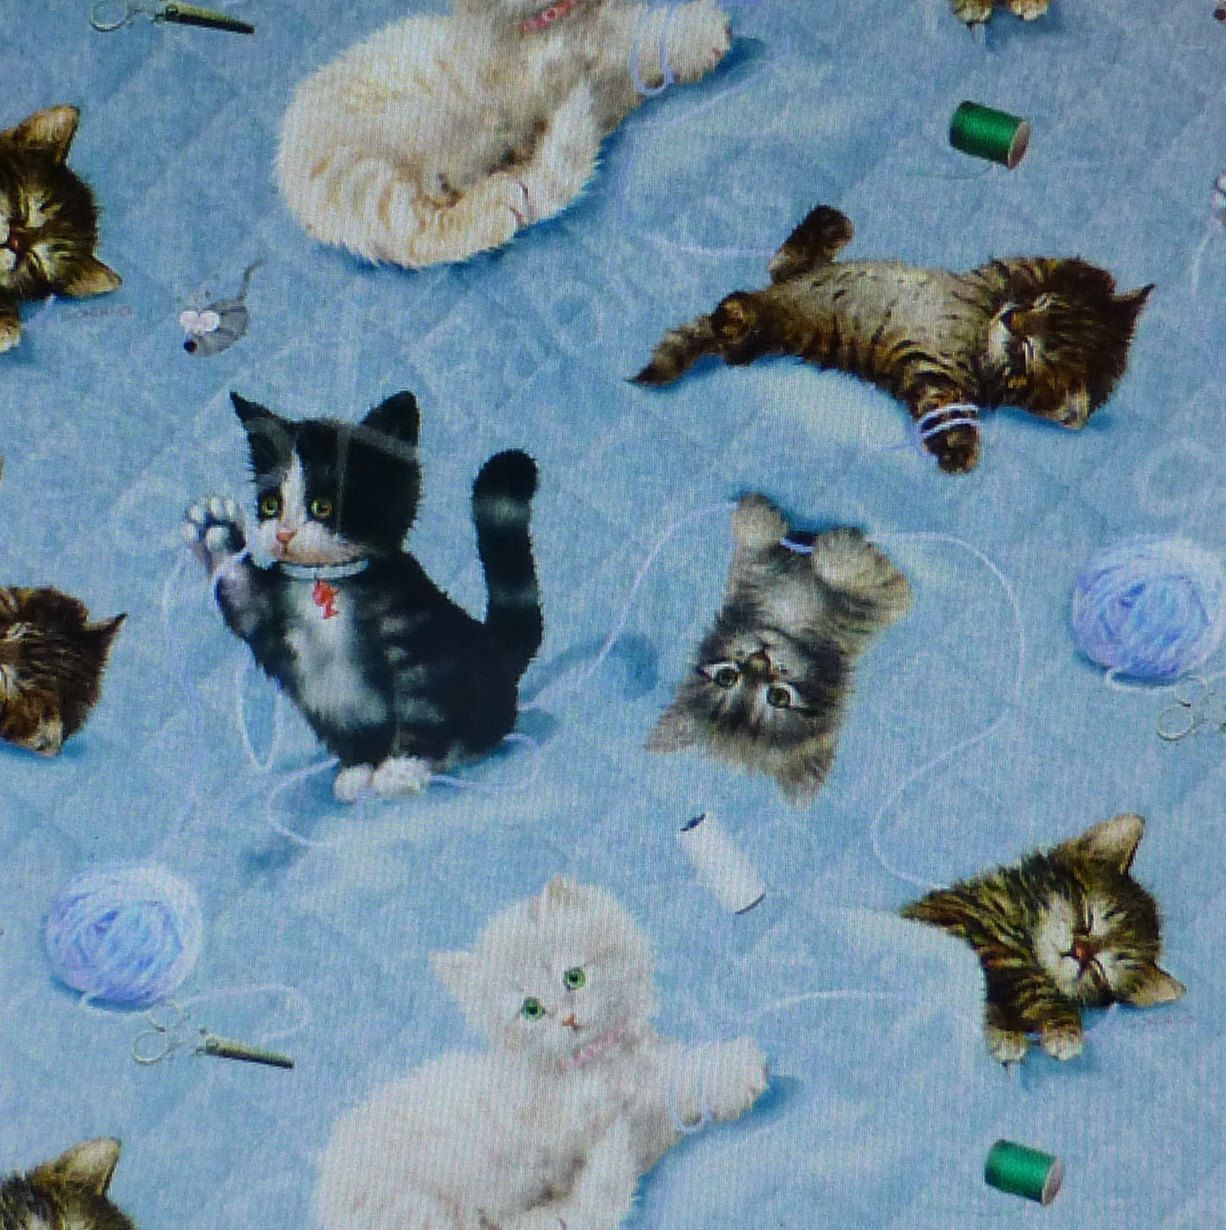 Il Fullxfull 882523028 J125 Jpg 1226 1230 Cottage Quilt Cat Fabric Quilt Shop